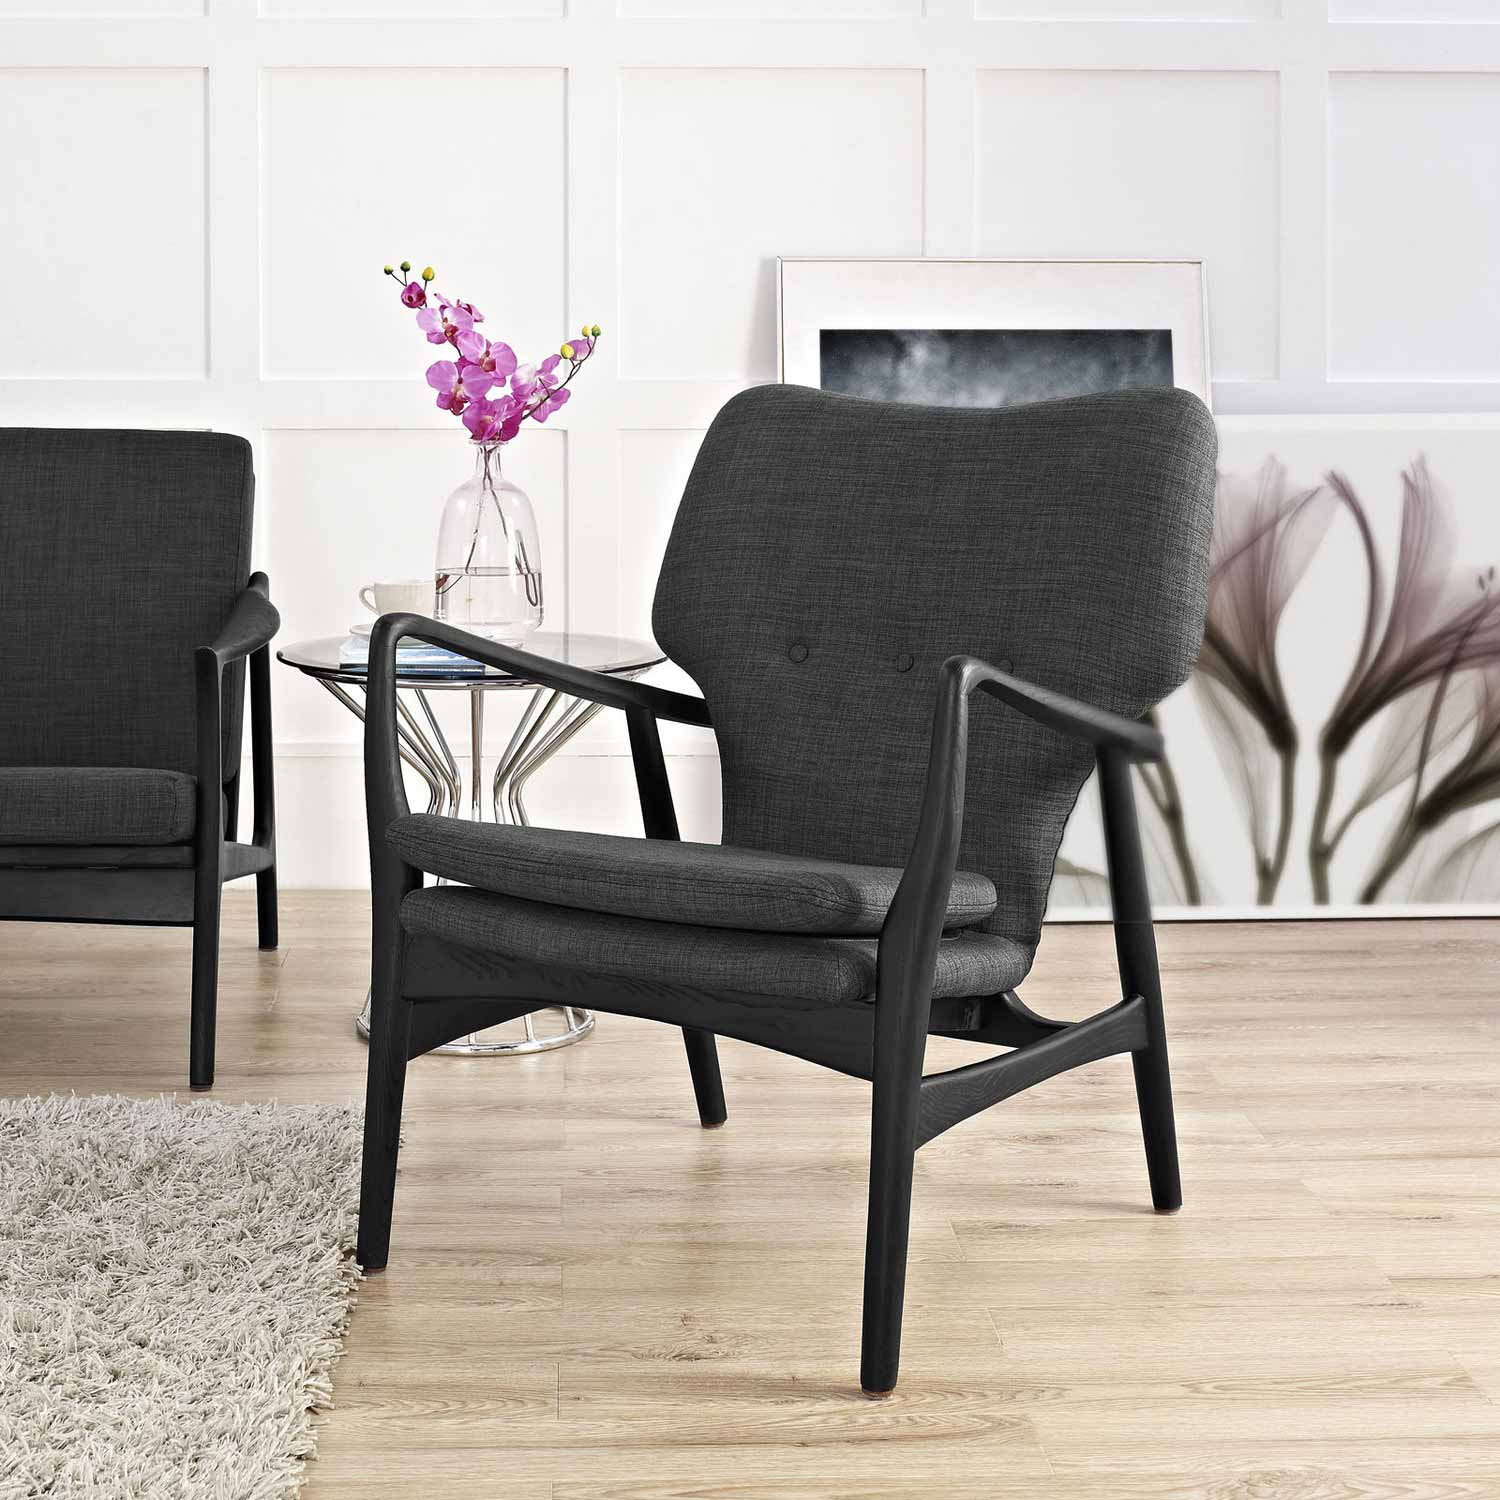 Modway Heed Lounge Chair - Black/Gray